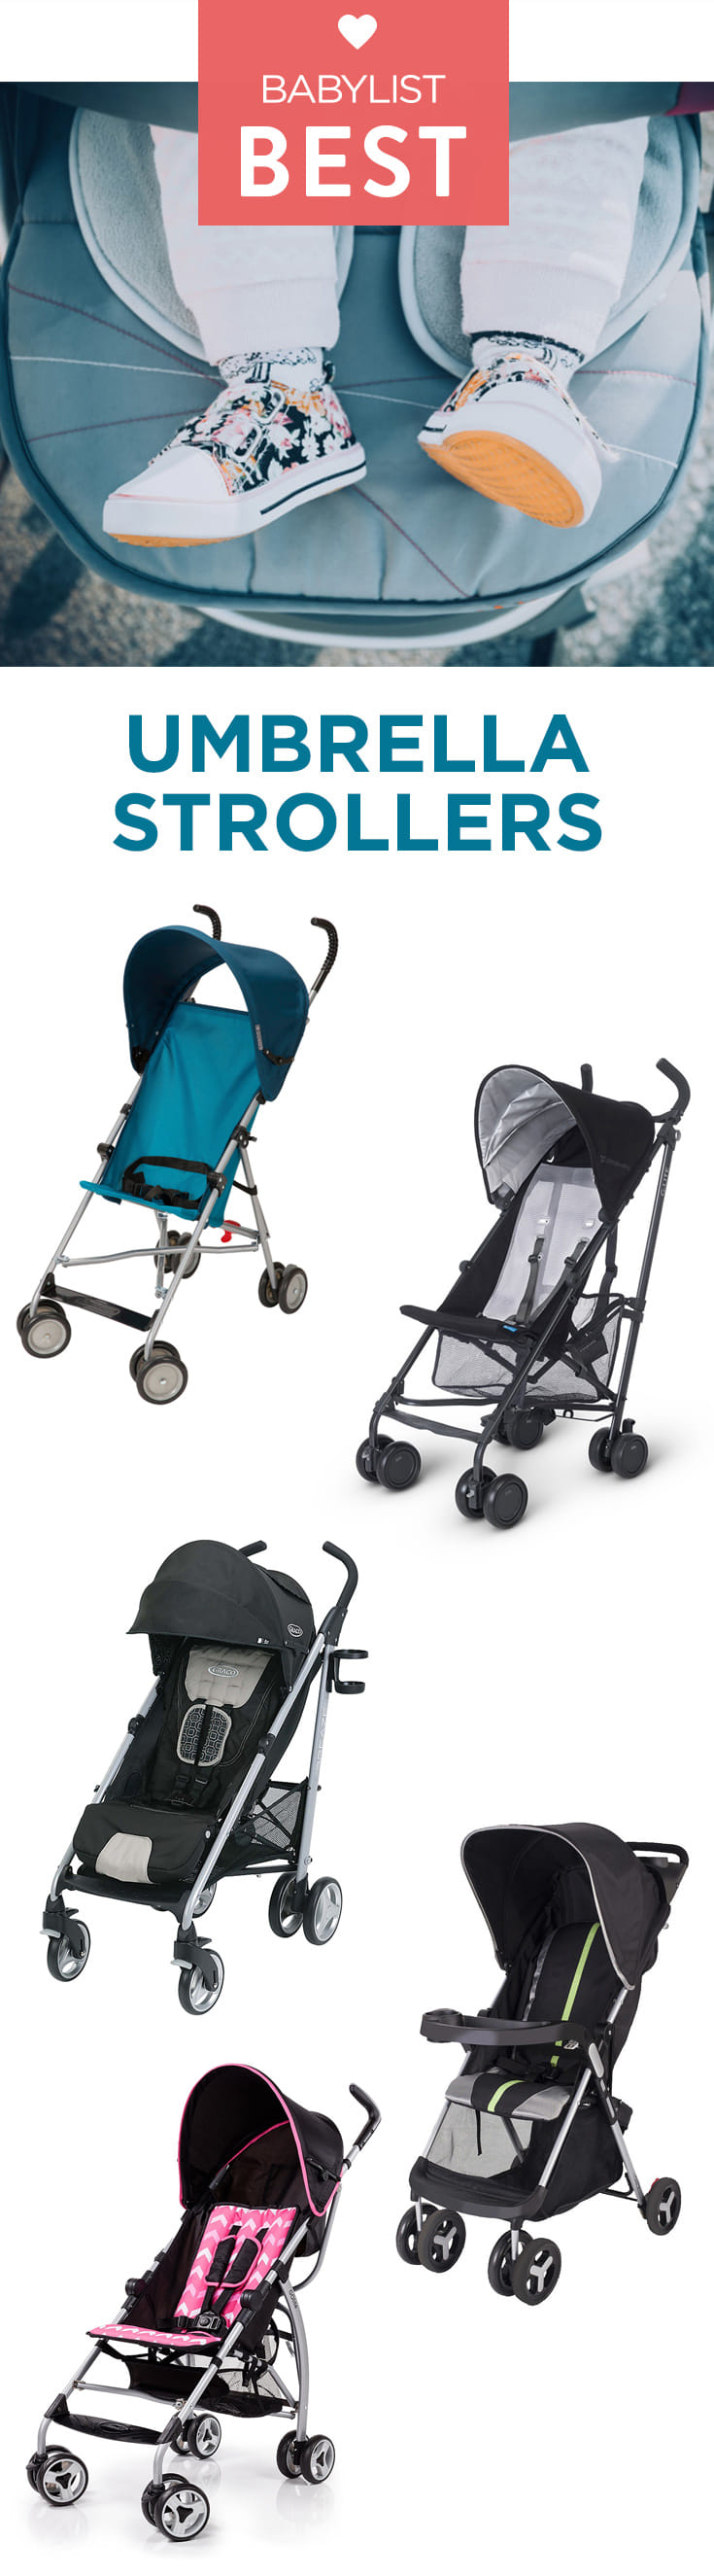 Check out the six best umbrella strollers according to thousands of Babylist parents.